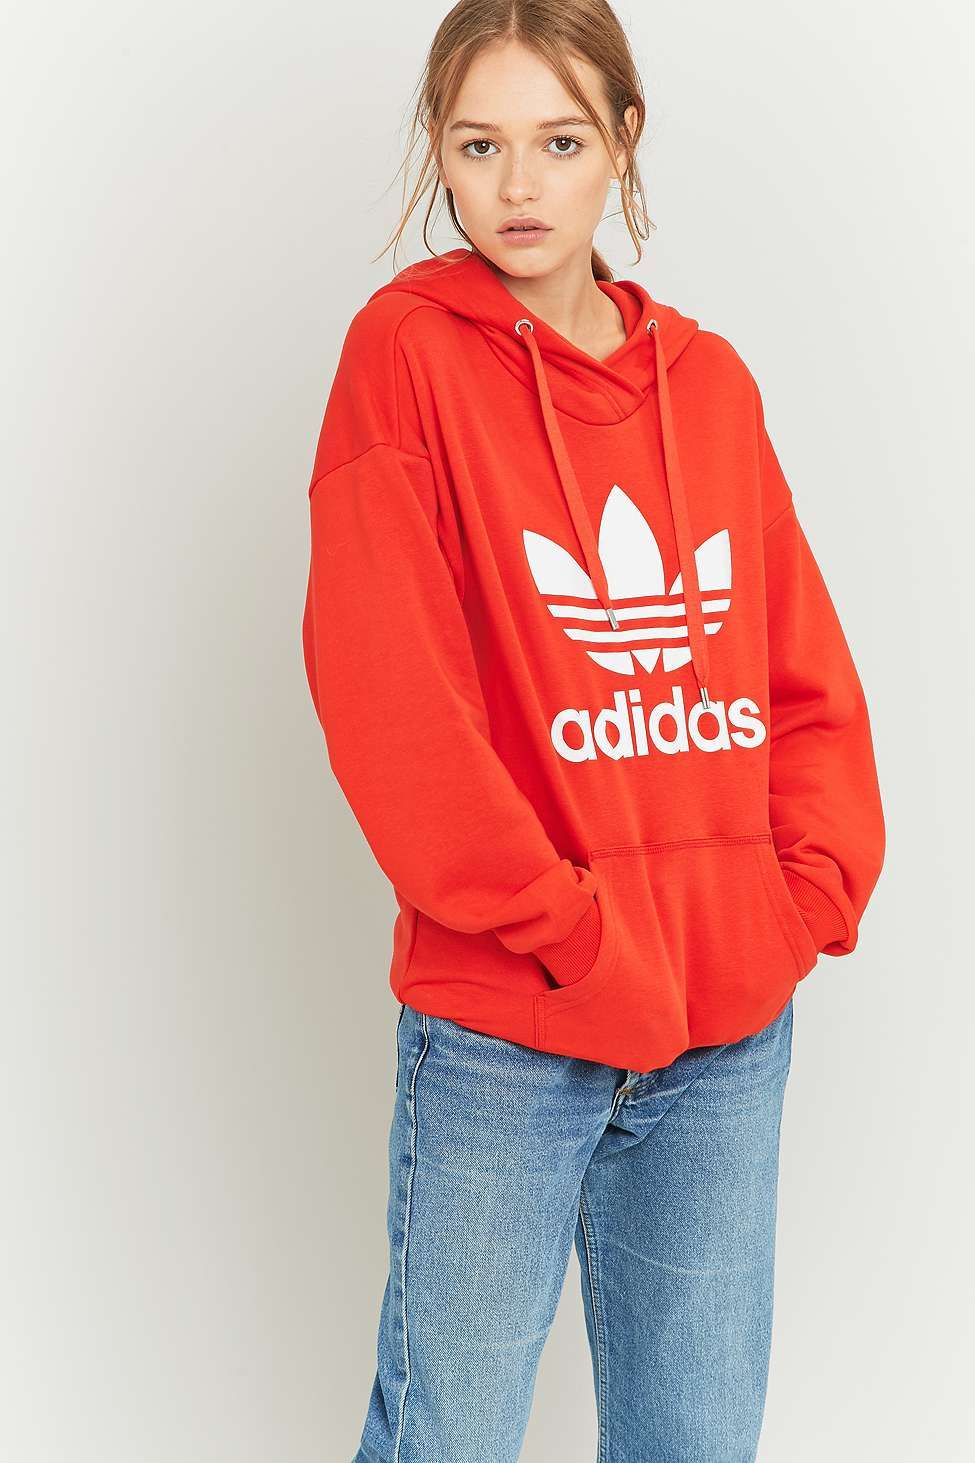 adidas Originals - Sweat à capuche rouge motif trèfle in 2018 ... 3976da02b9c